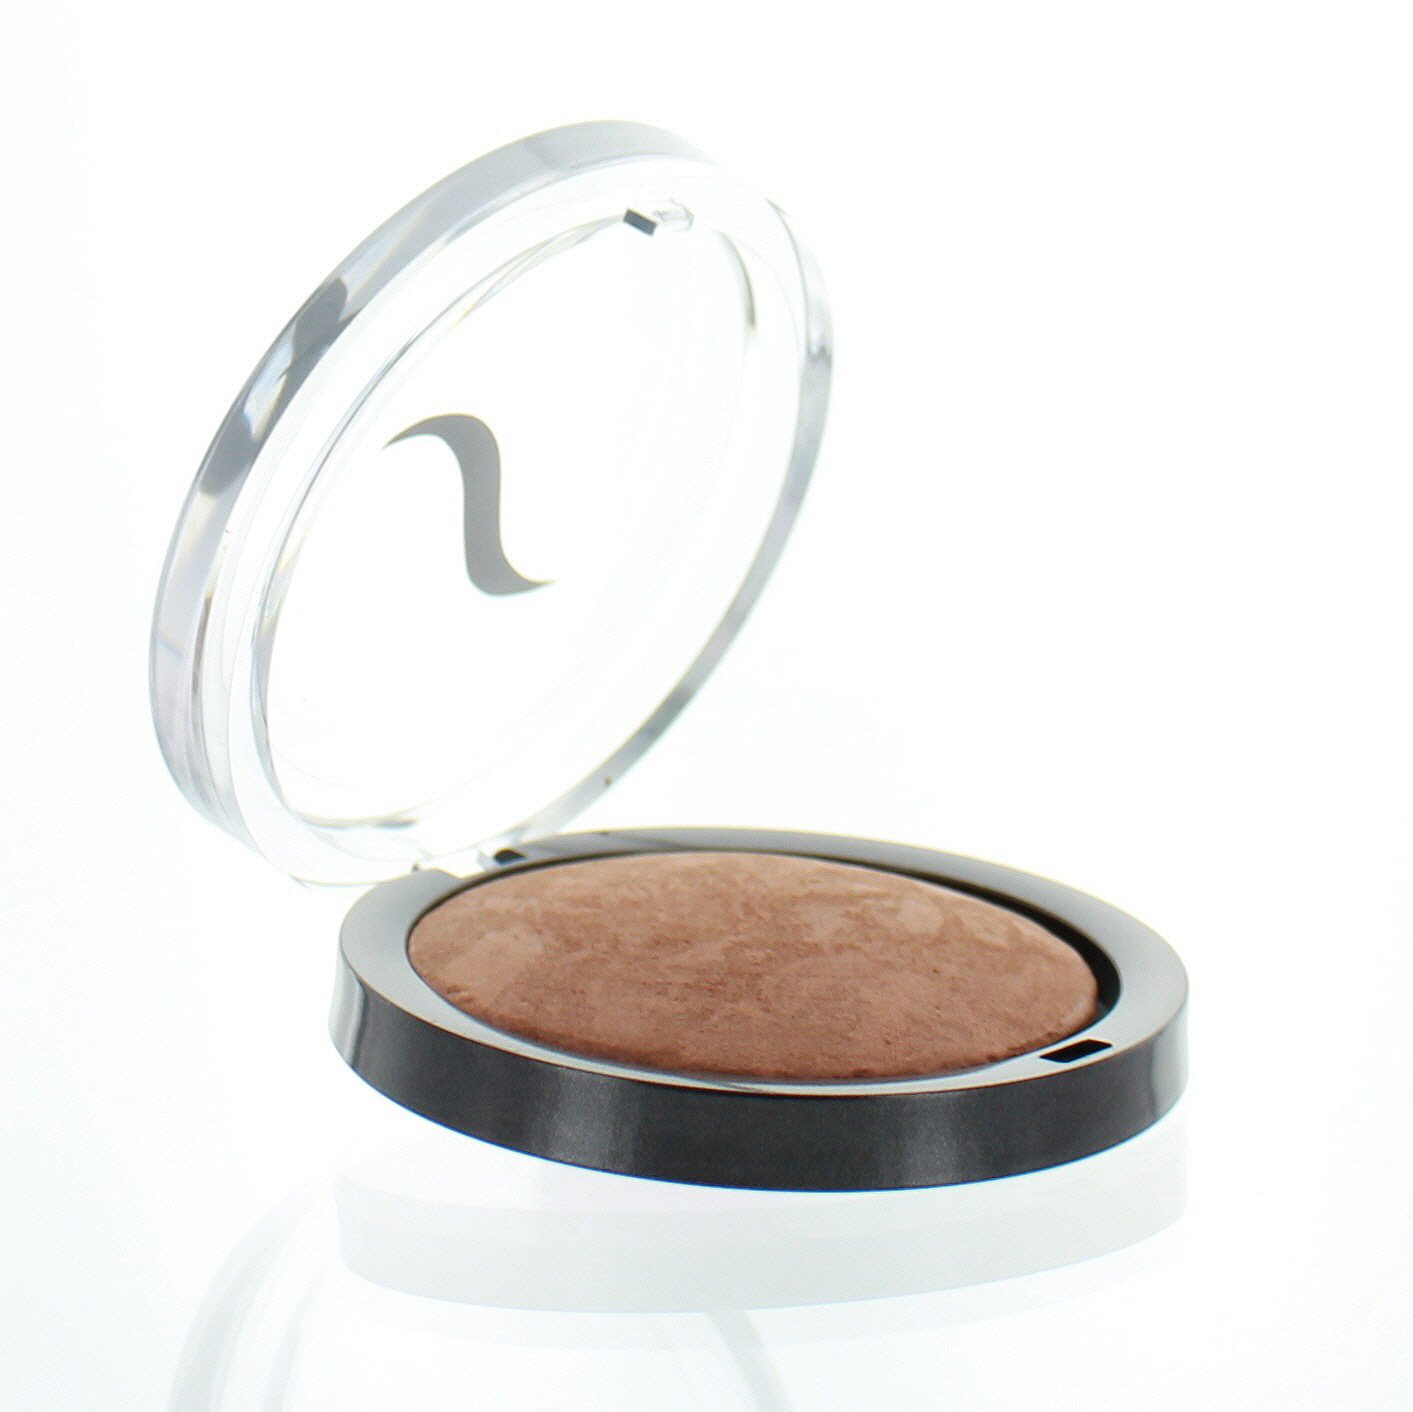 Sorme Cosmetics Baked Bronzer, 0.2 Ounce